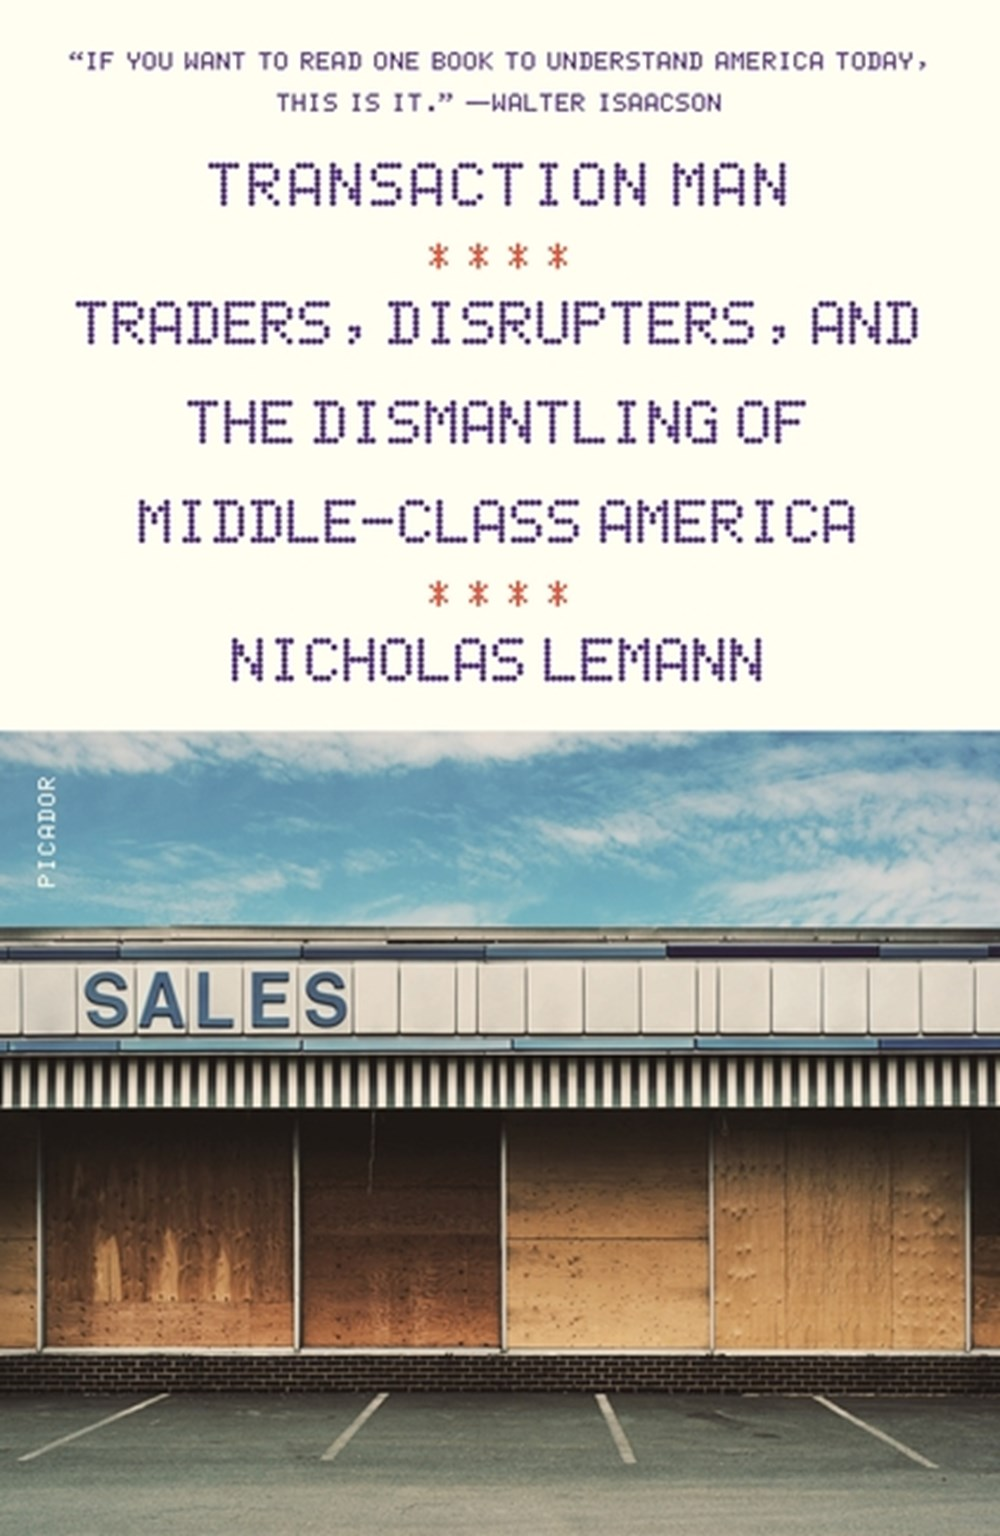 Transaction Man Traders, Disrupters, and the Dismantling of Middle-Class America